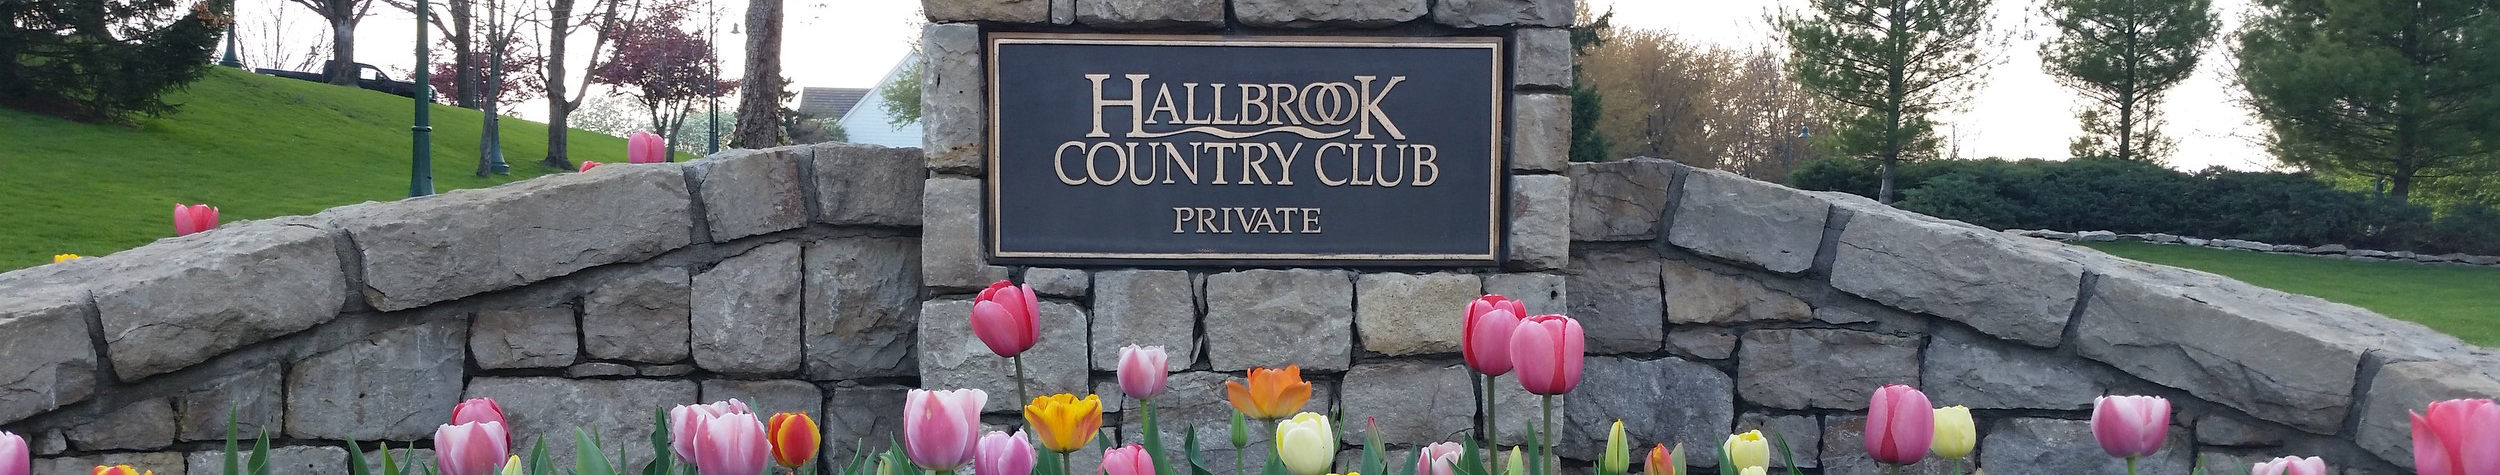 Hallbrook country club all things athletic for Dive bar shirt club promotion codes